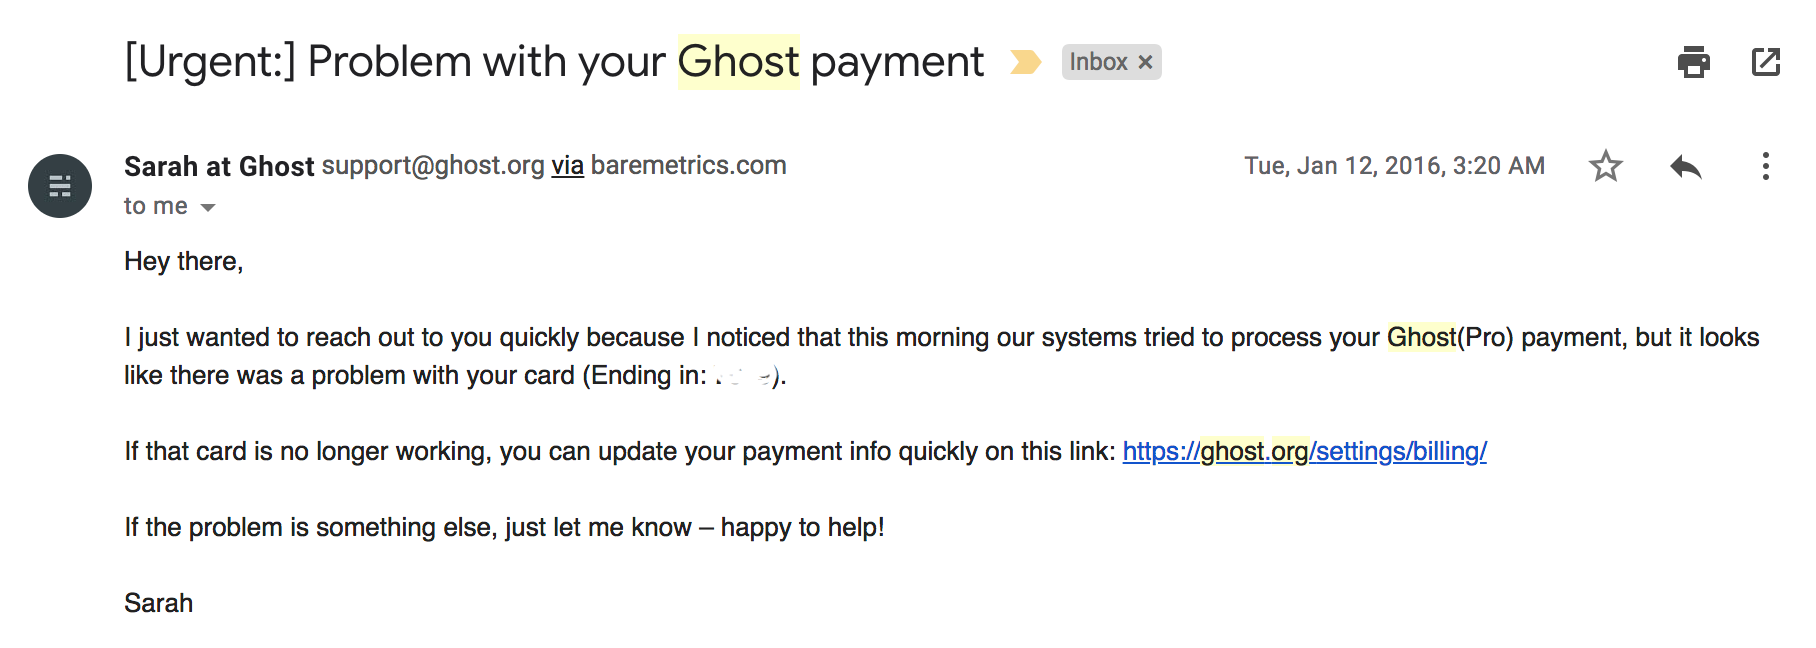 involuntary churn email from ghost